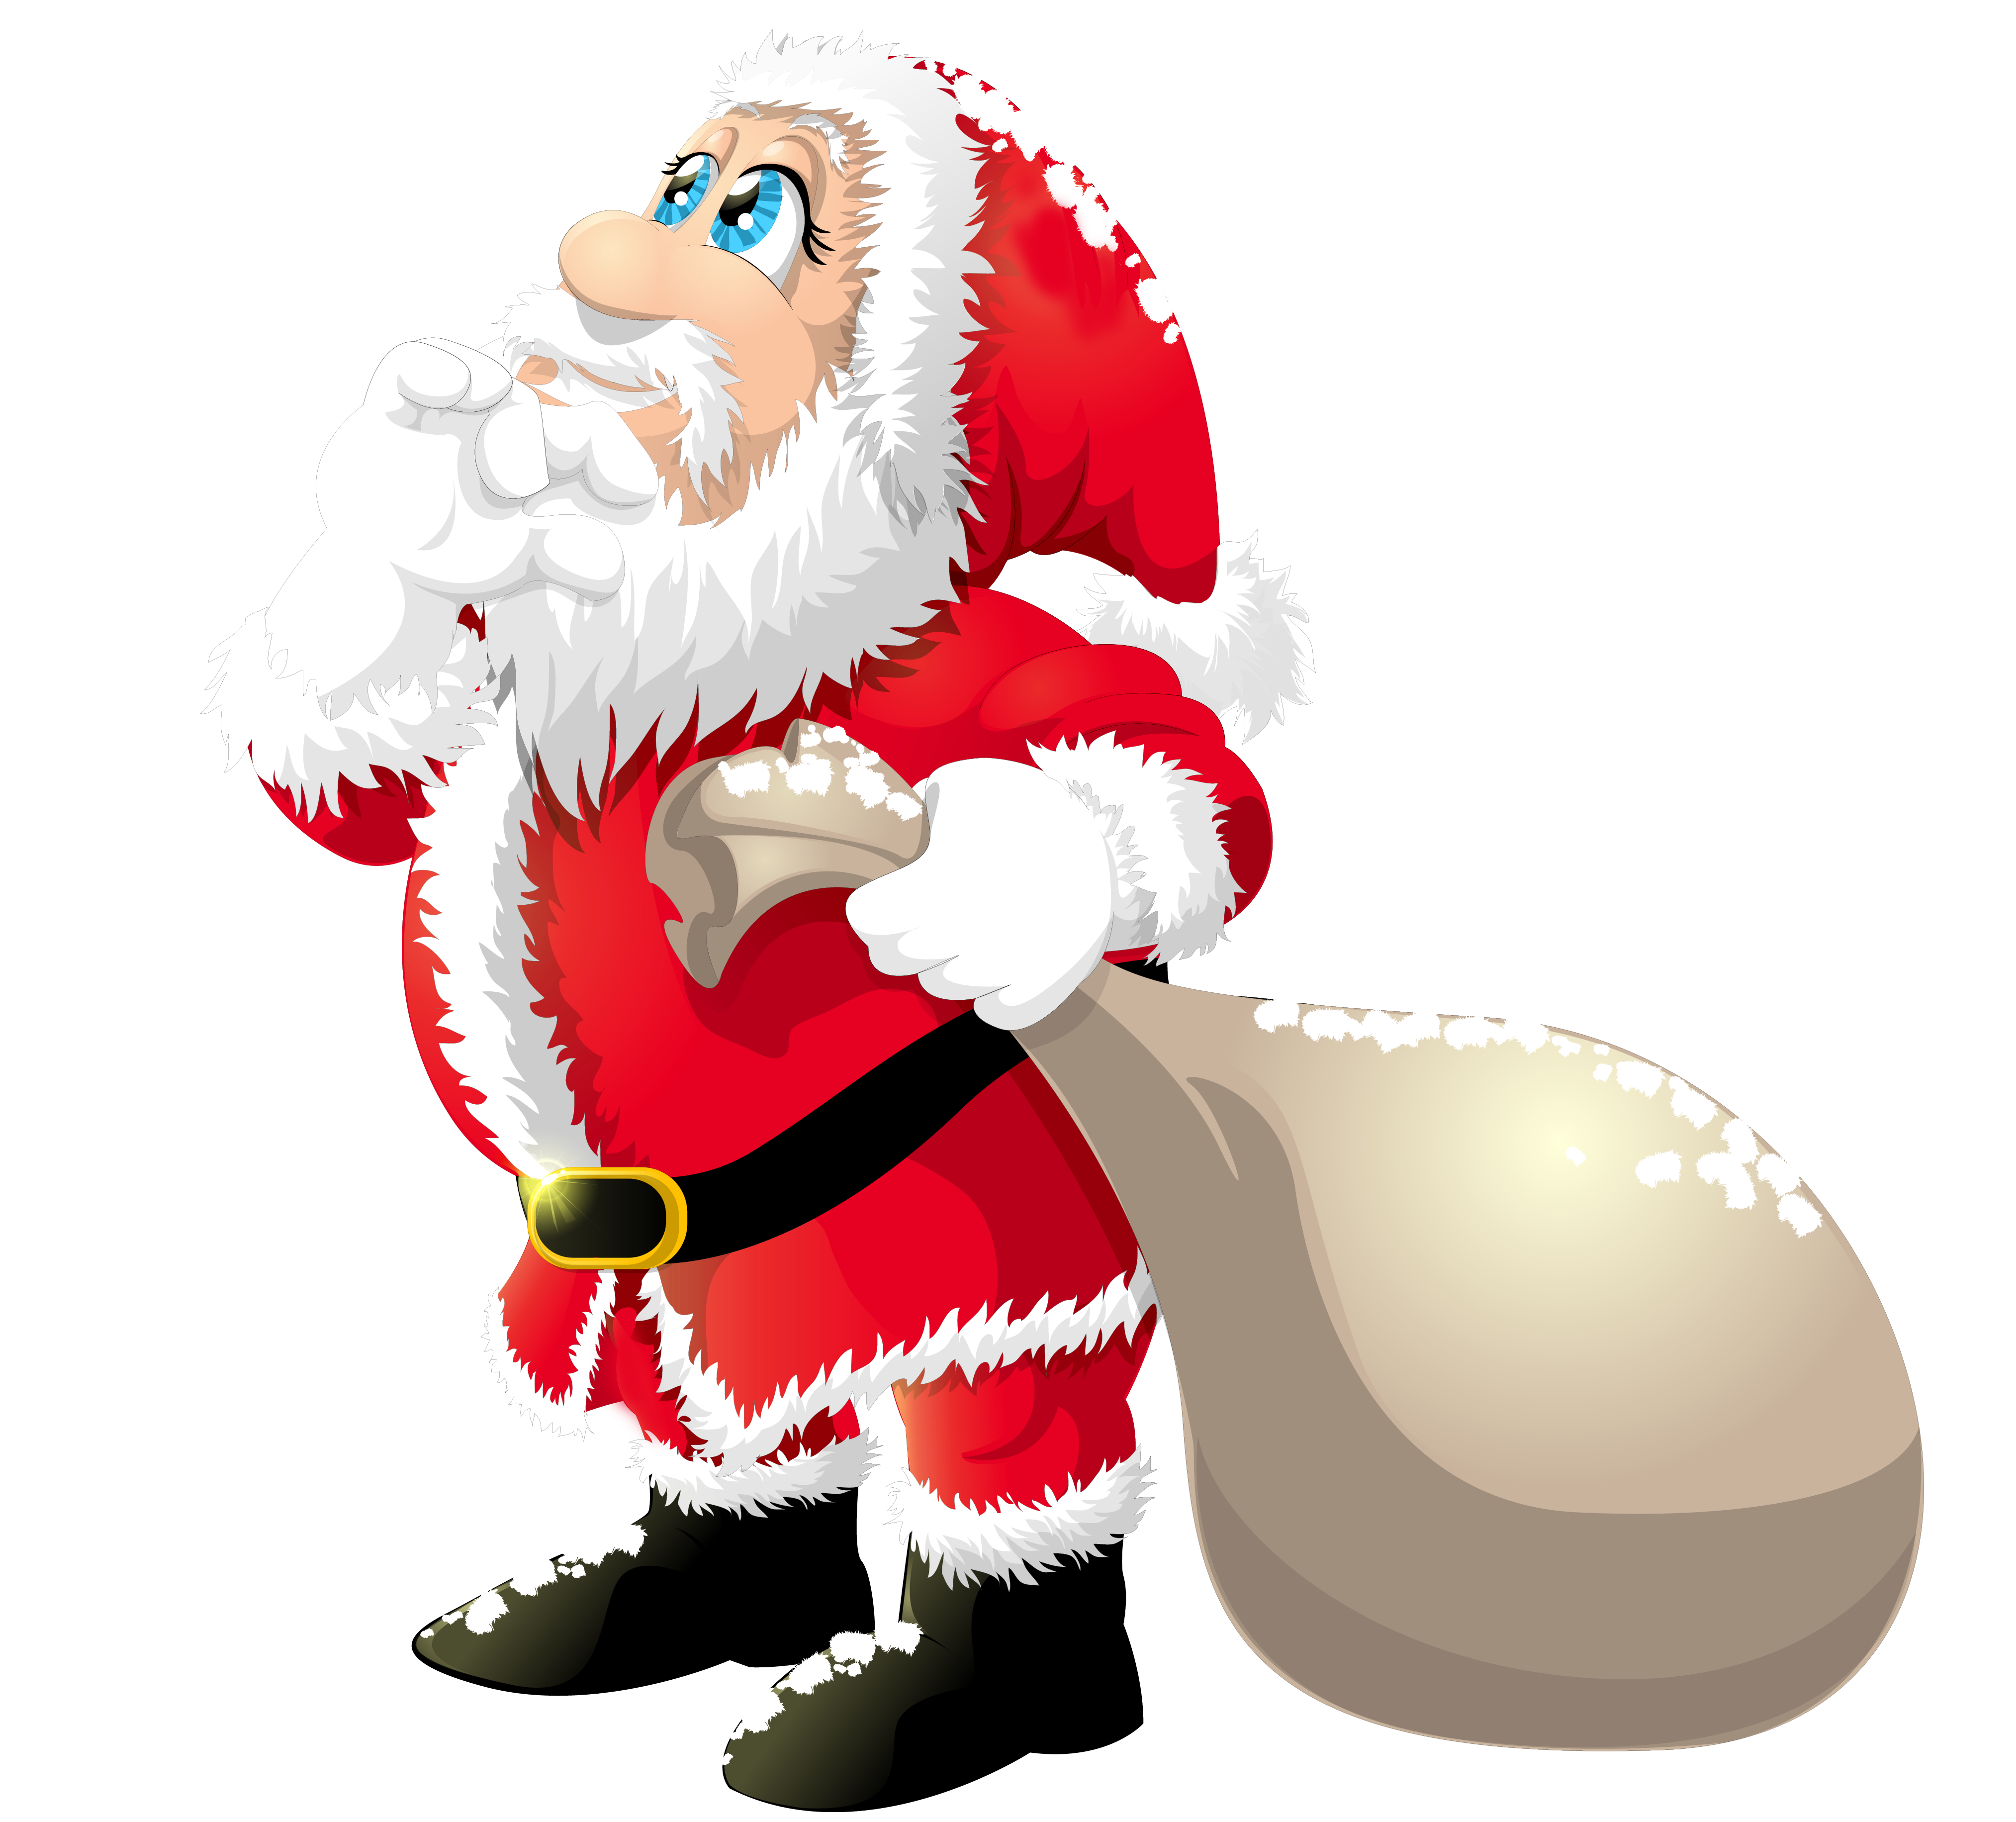 Clipart santa vector. Cute claus gallery yopriceville